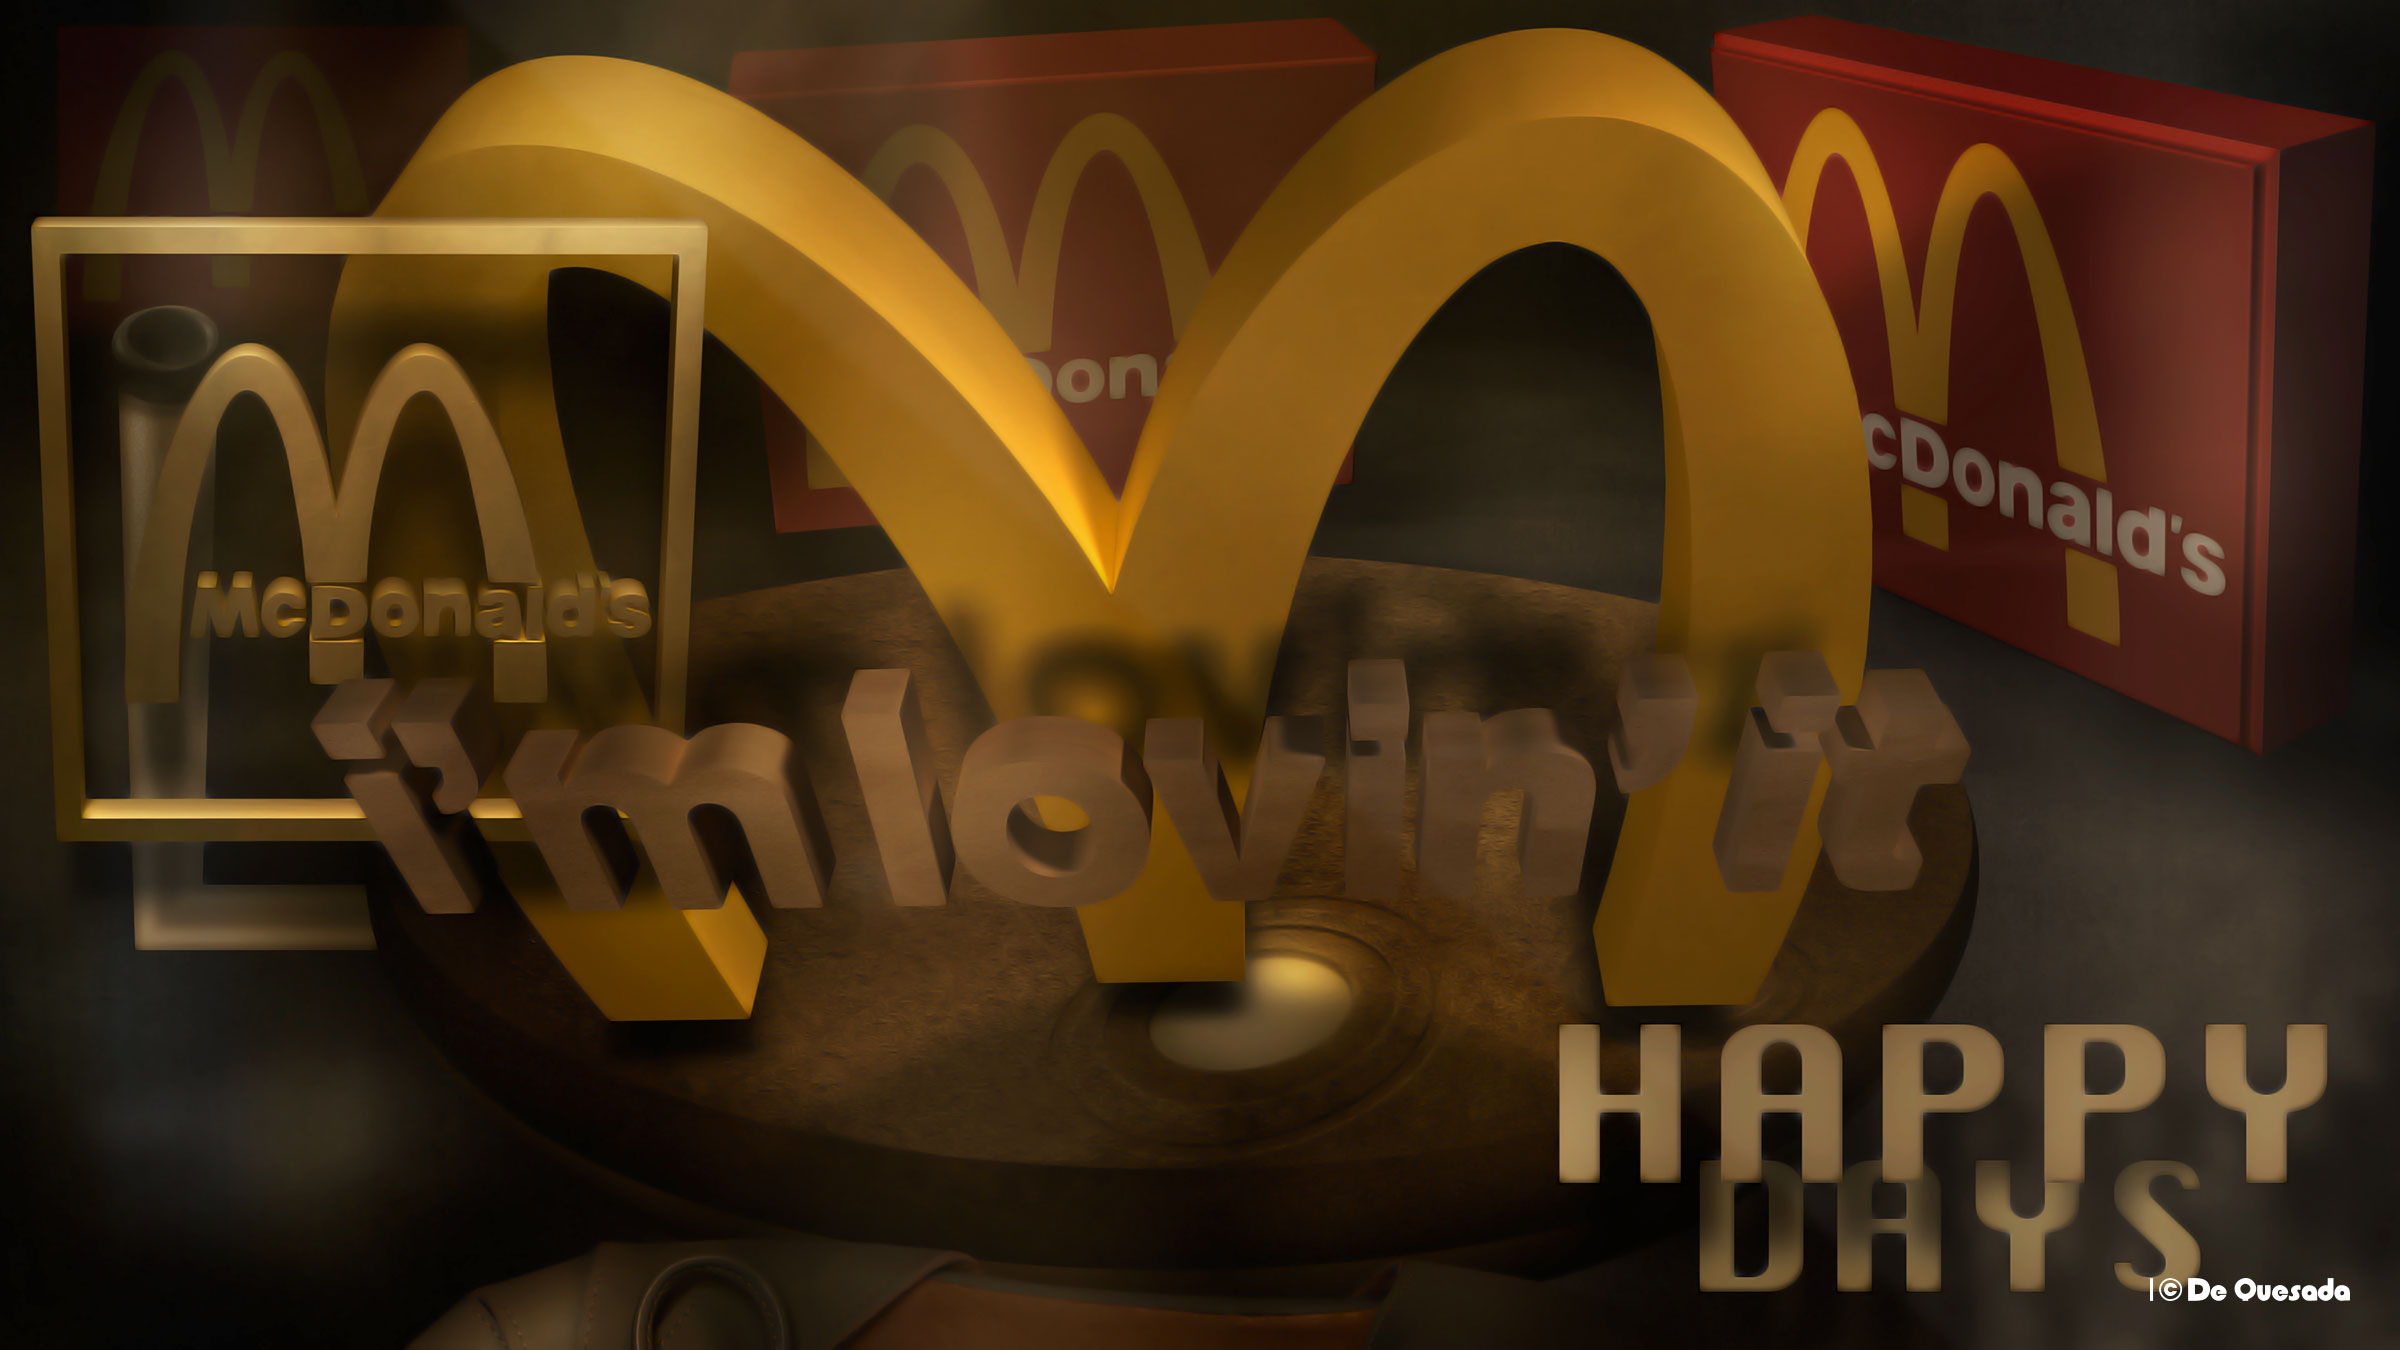 Happy Days, 3d Mac Donalds Yellow Logo - Japan